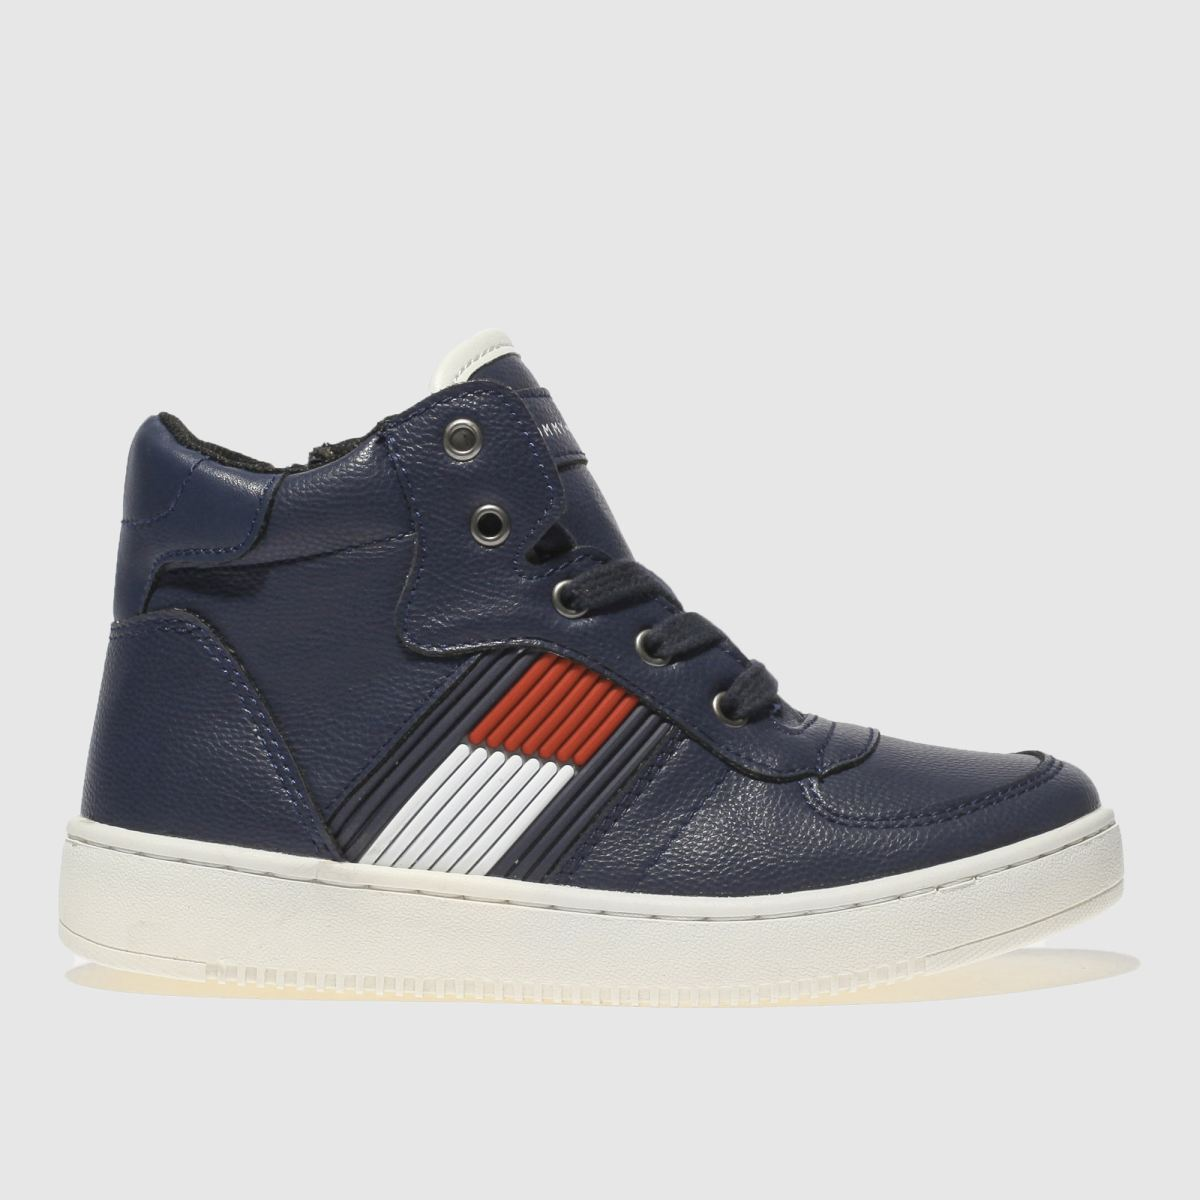 Tommy Hilfiger Navy & Red High Top Lace Up Sneaker Trainers Juni